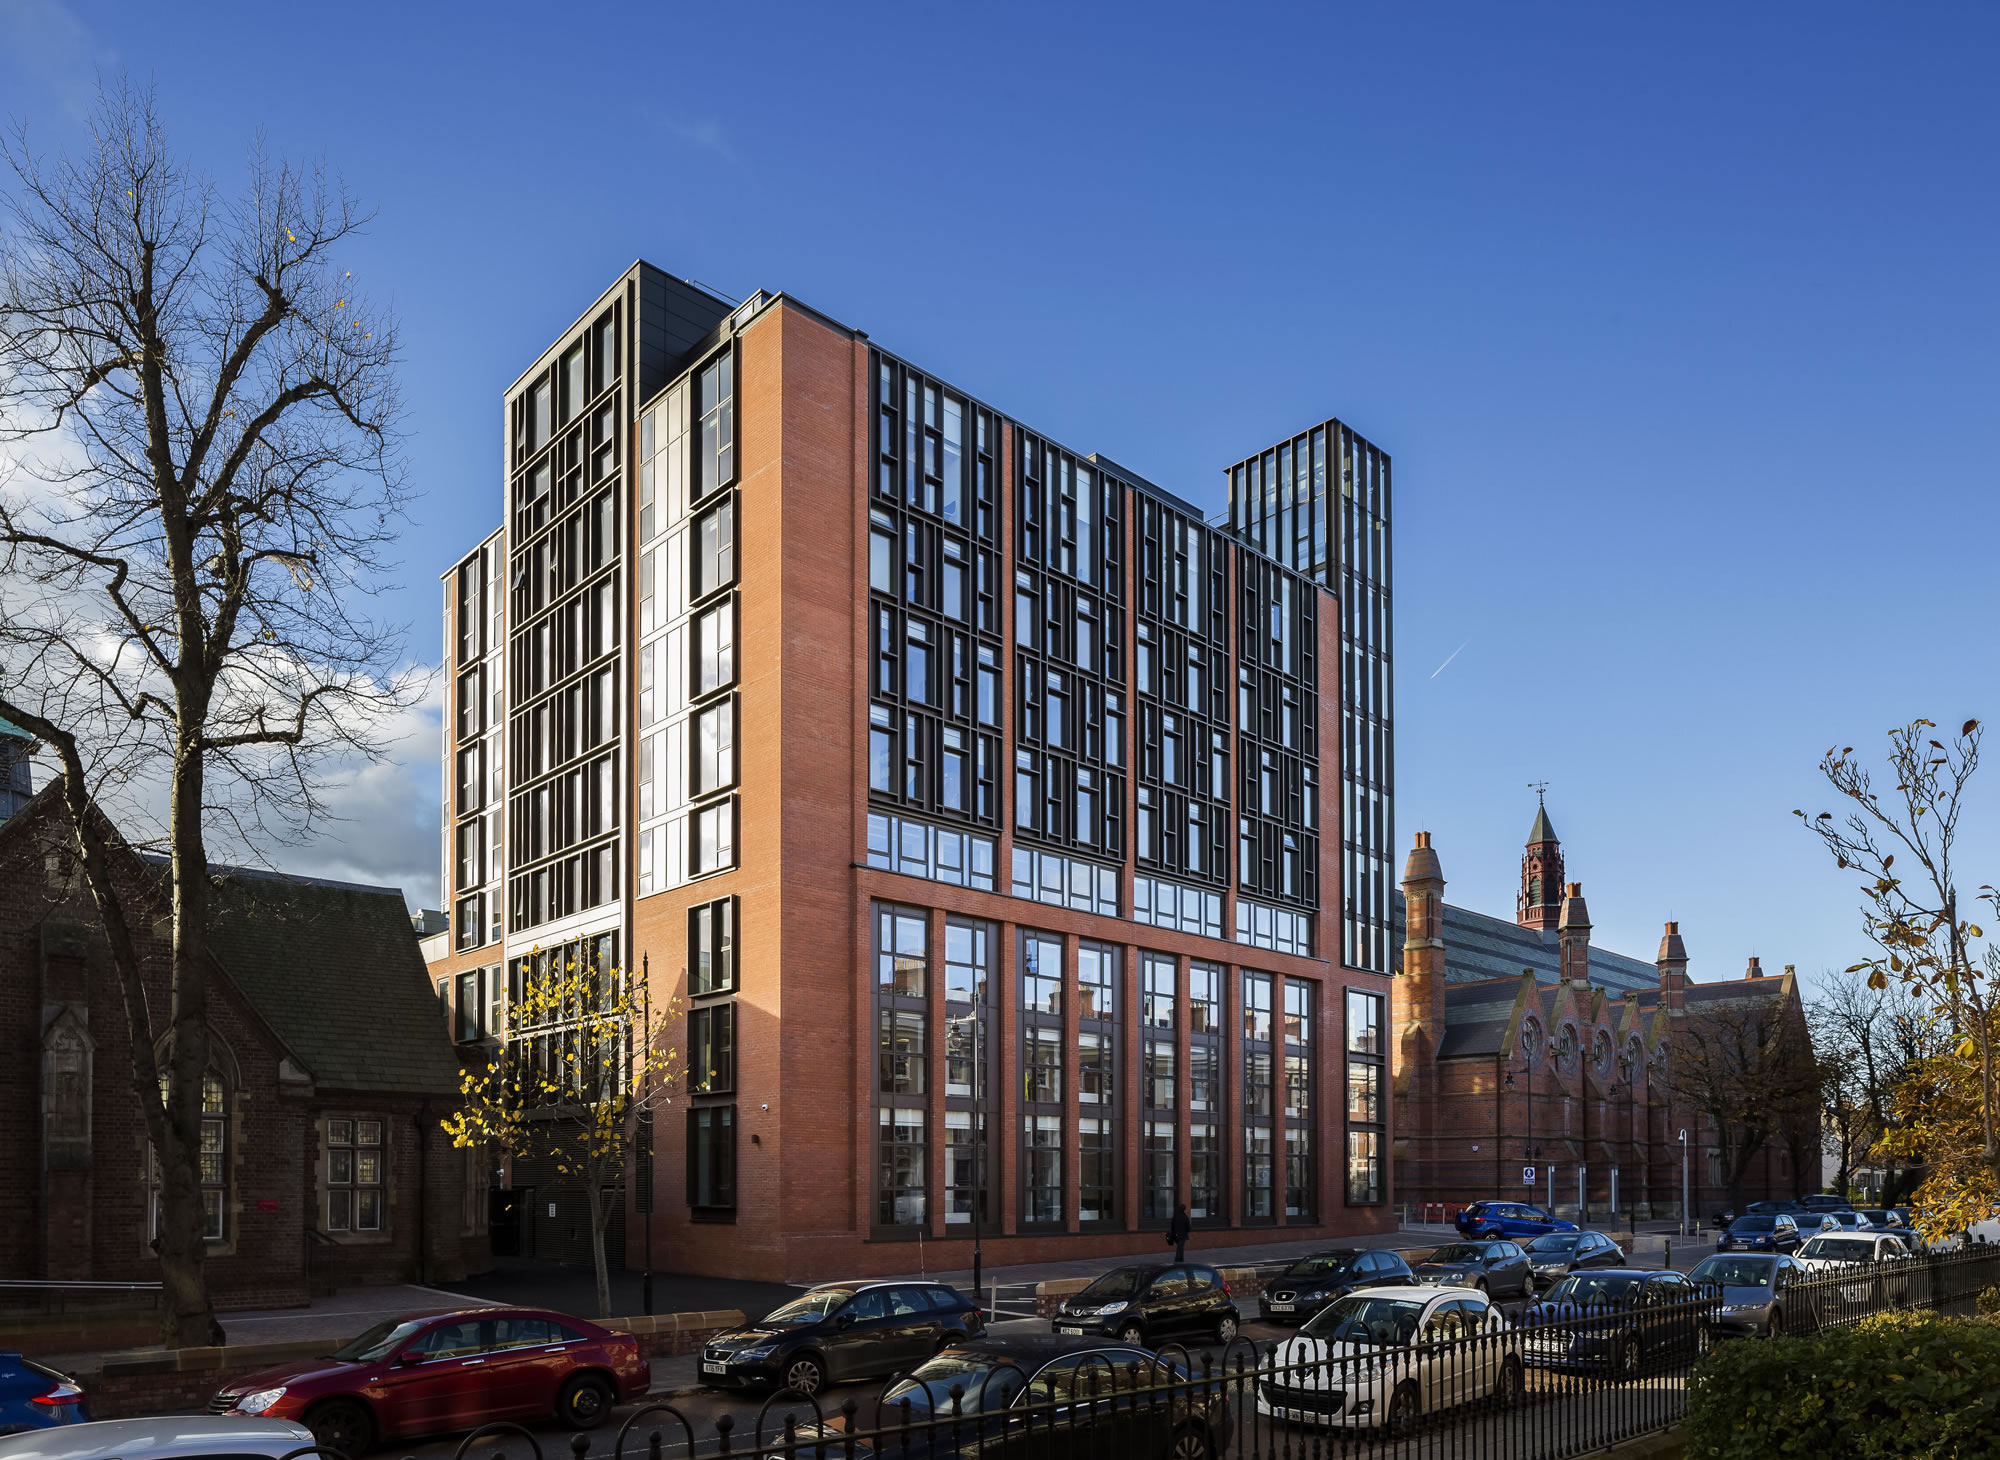 Queens University Belfast Main Site Tower School of Law